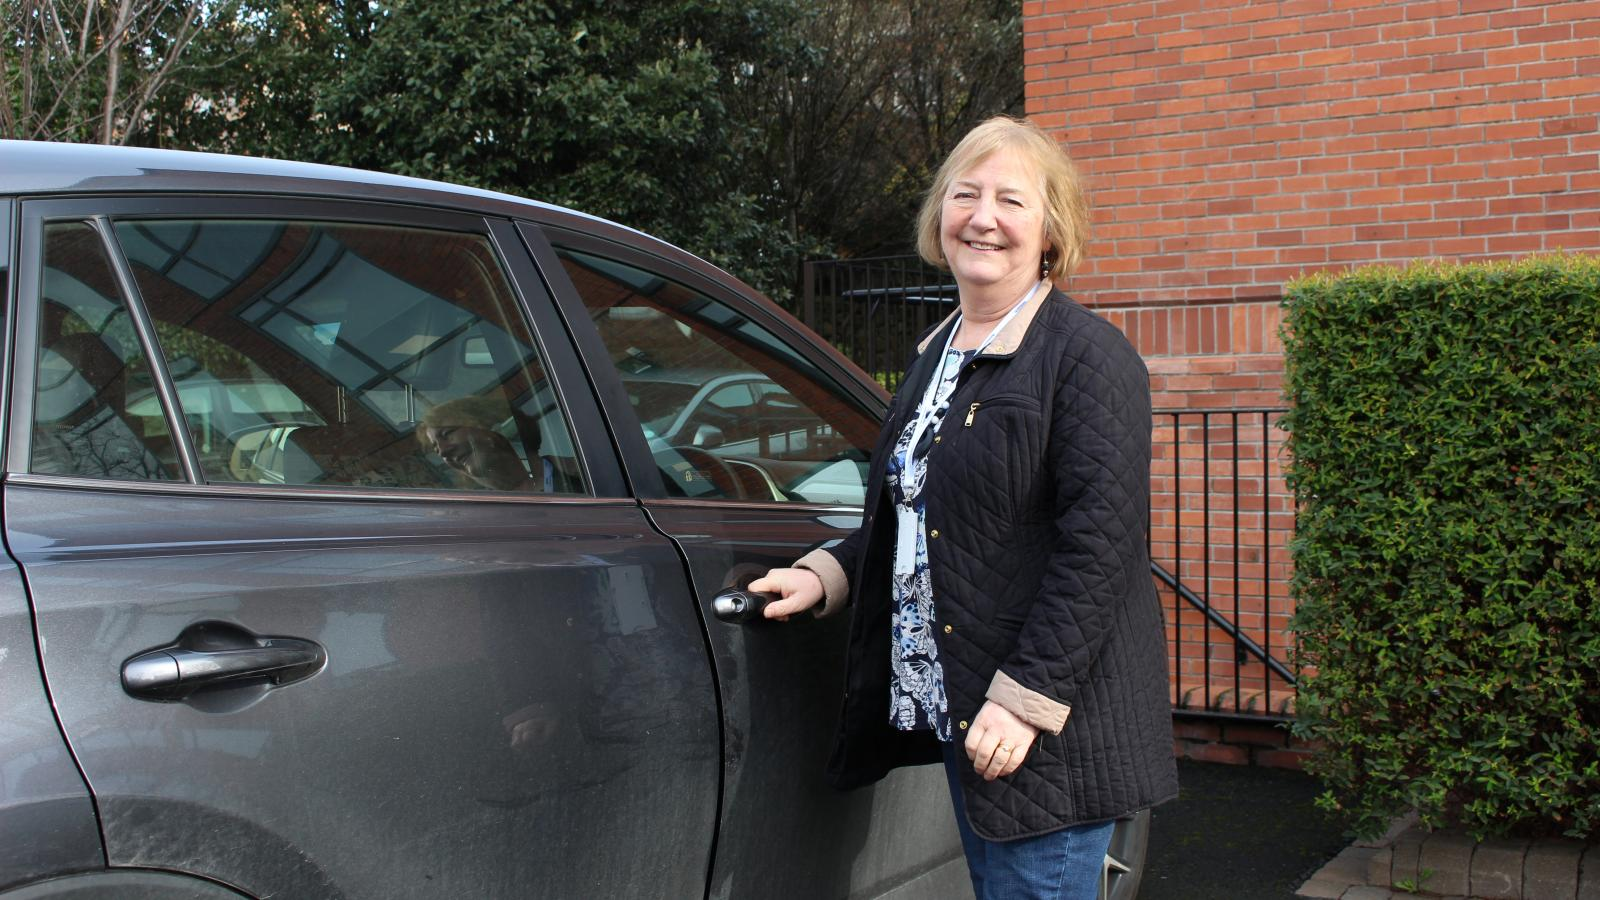 Volunteer driver standing by her car